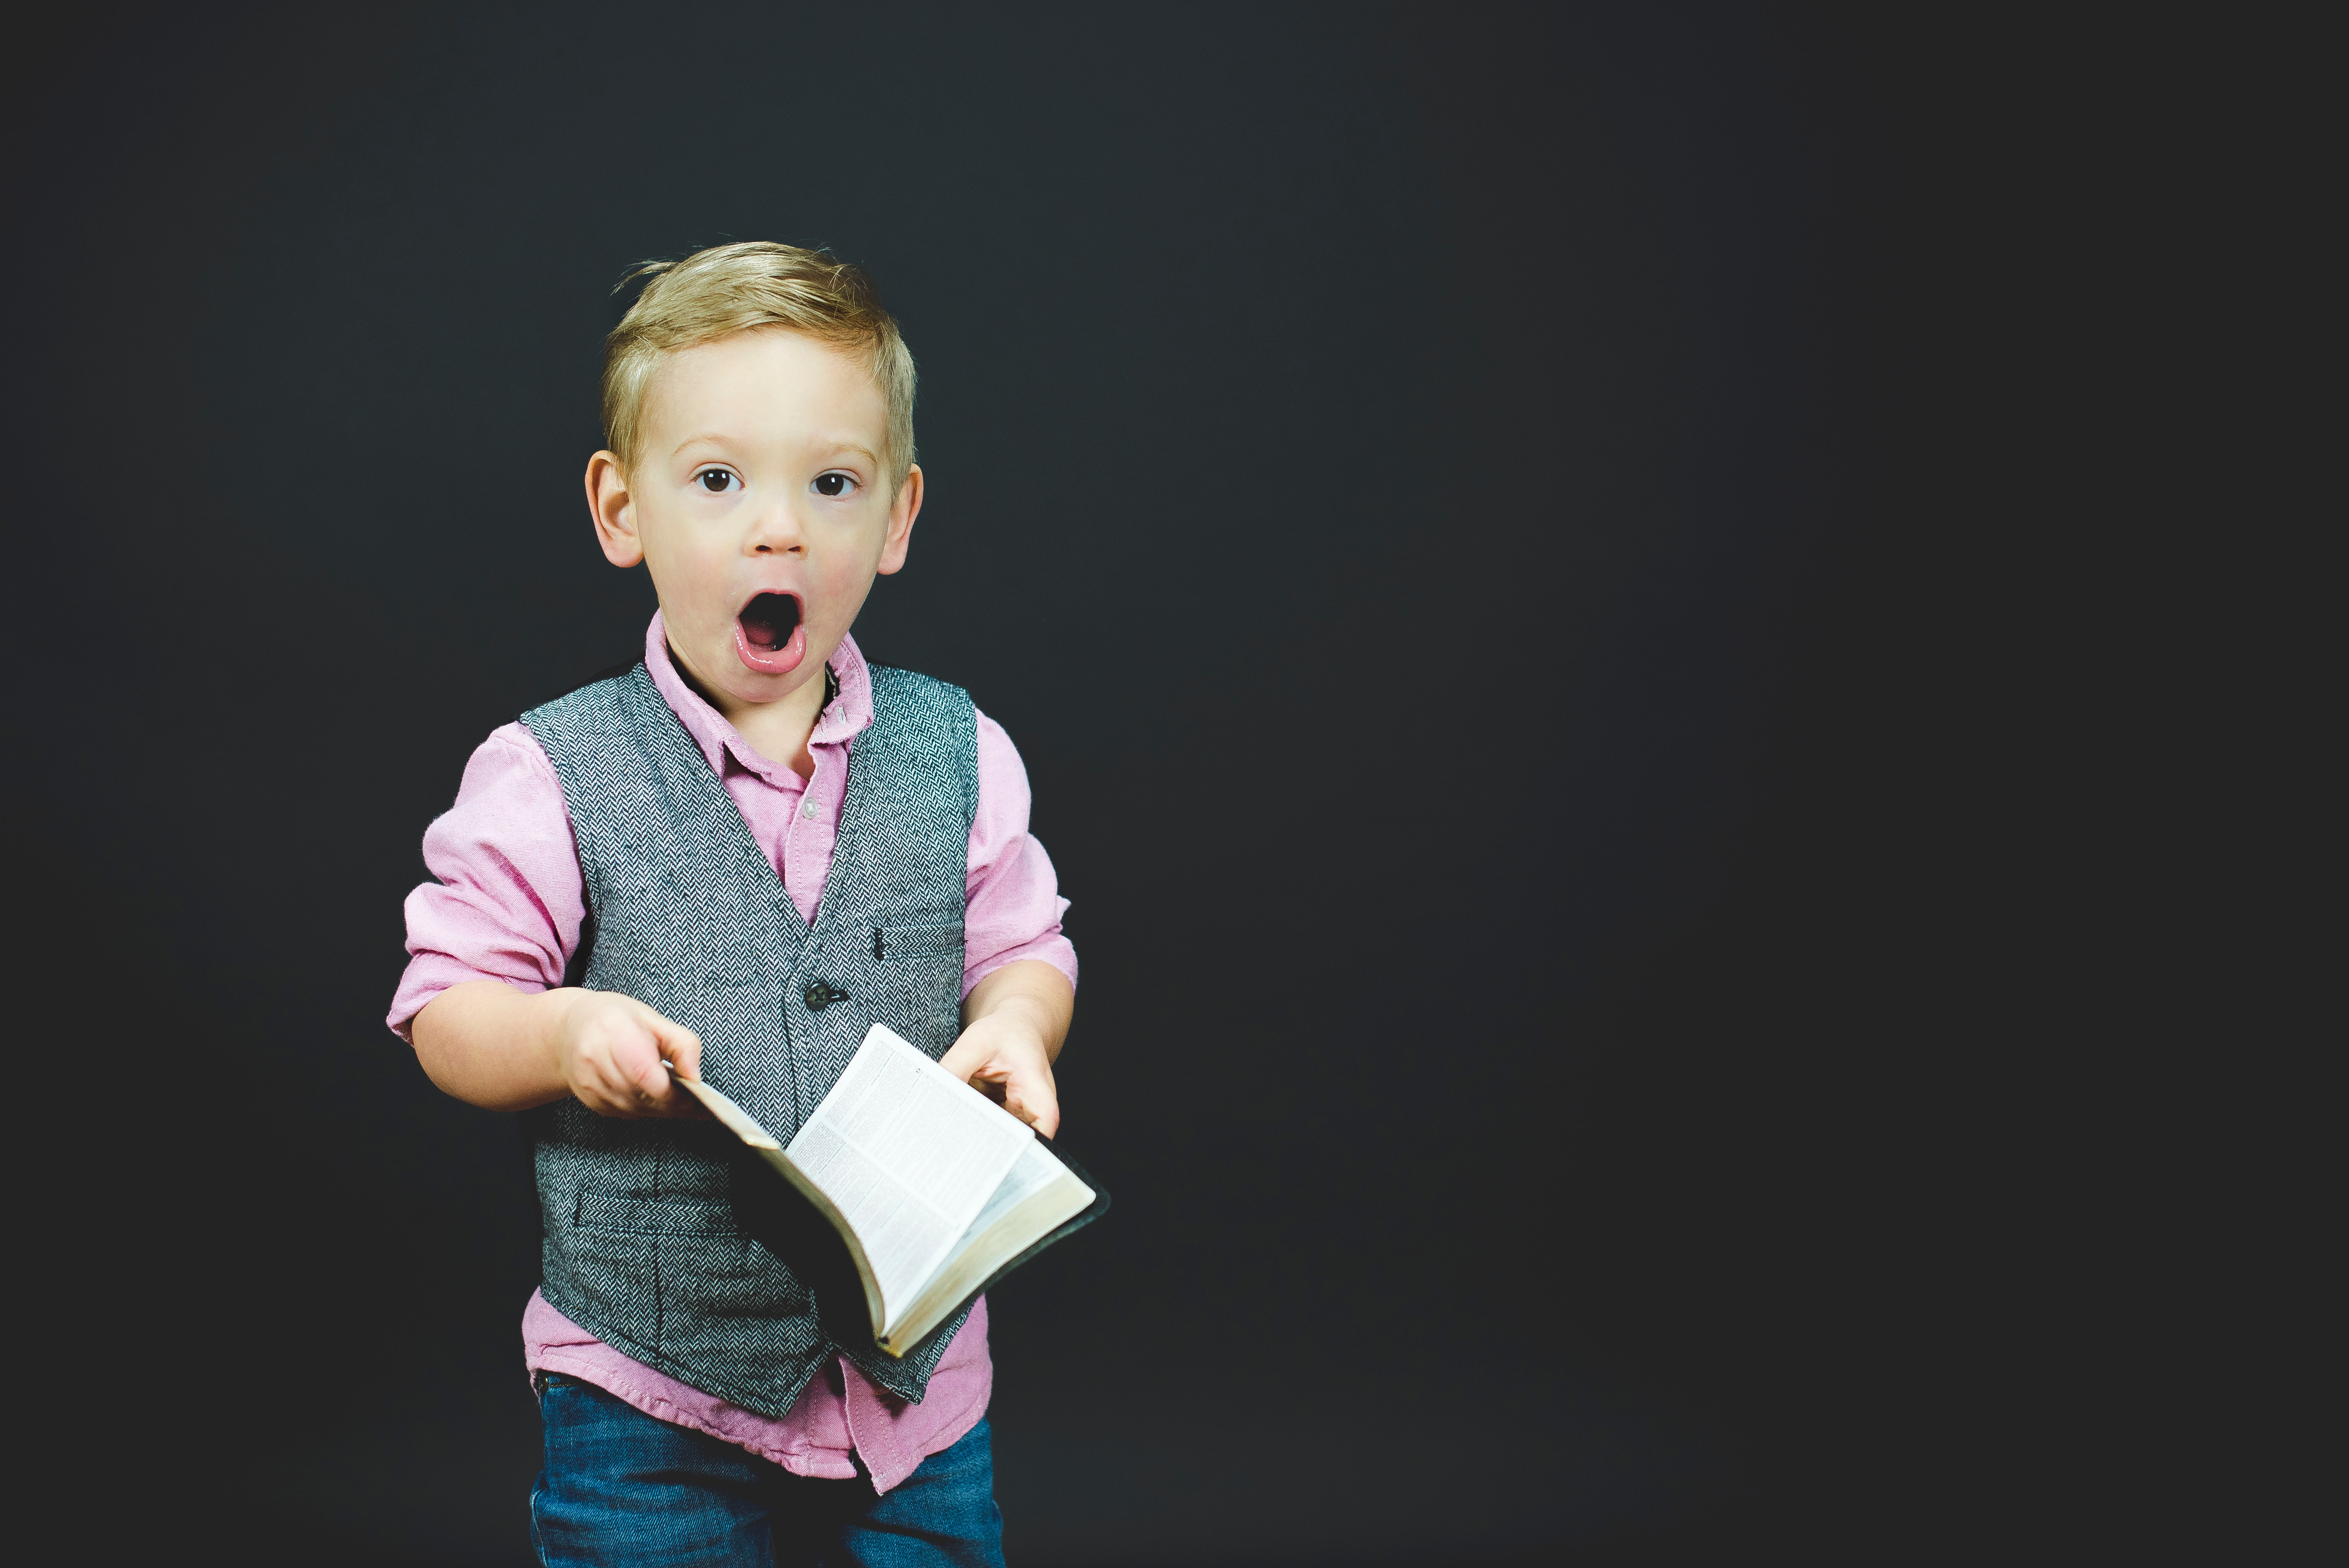 little boy with book and surprised expression